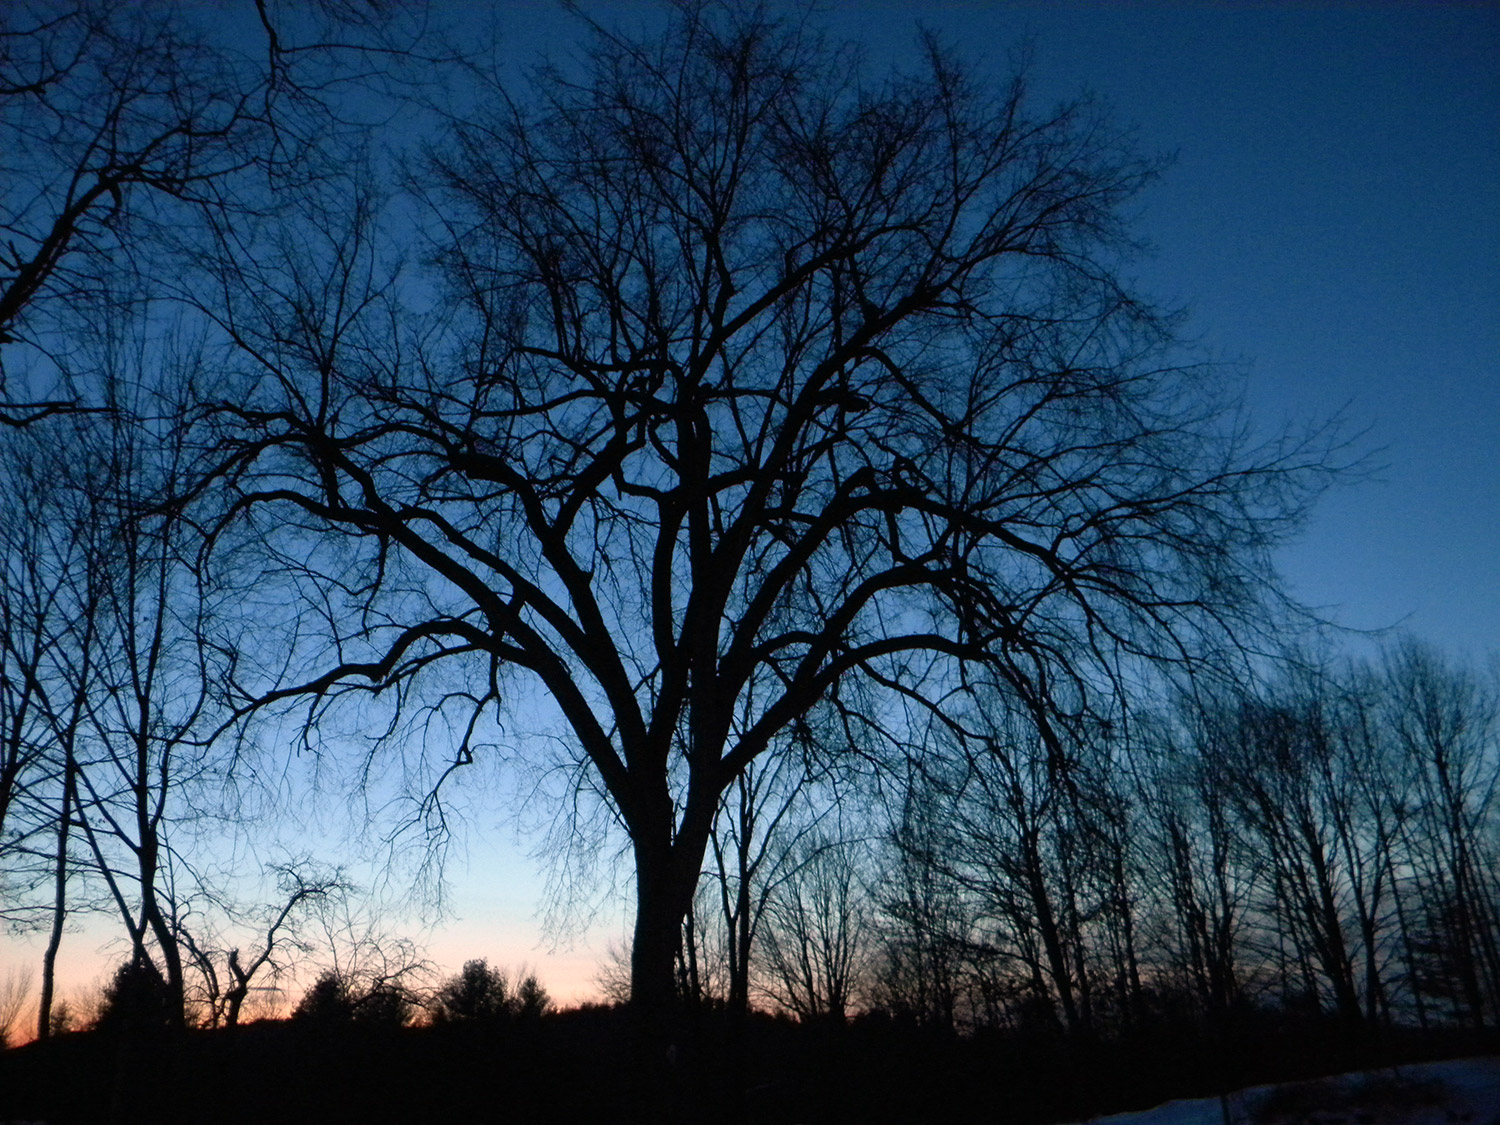 It's a less dramatic but still a lovely sunset at the farm of Scott and Patty Wright, where a very old dutch elm stands the test of time – as all must when time seems to stand still.